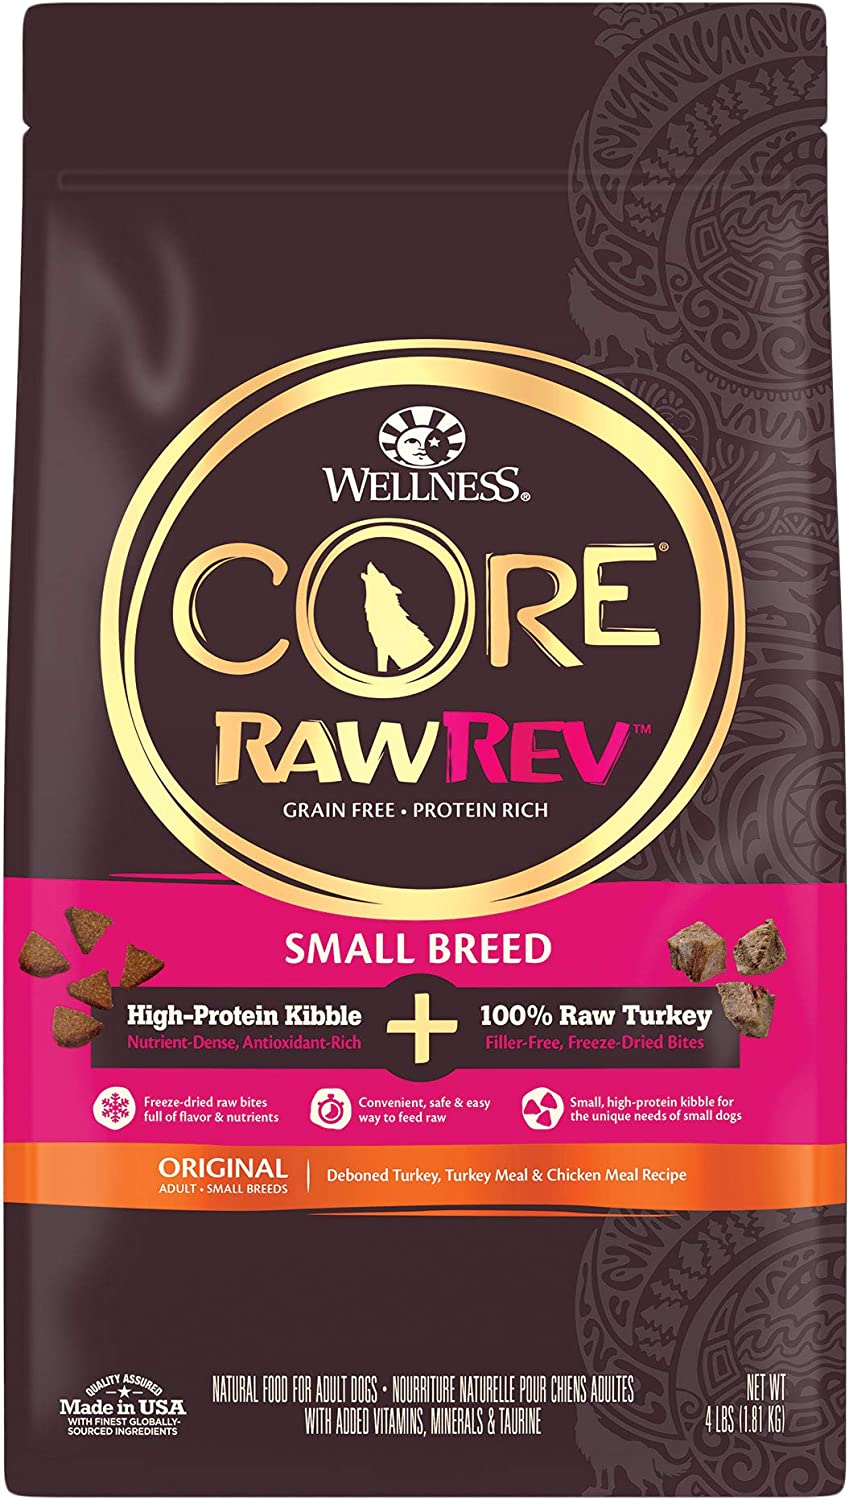 5. Wellness CORE RawRev Grain-Free Small Breed